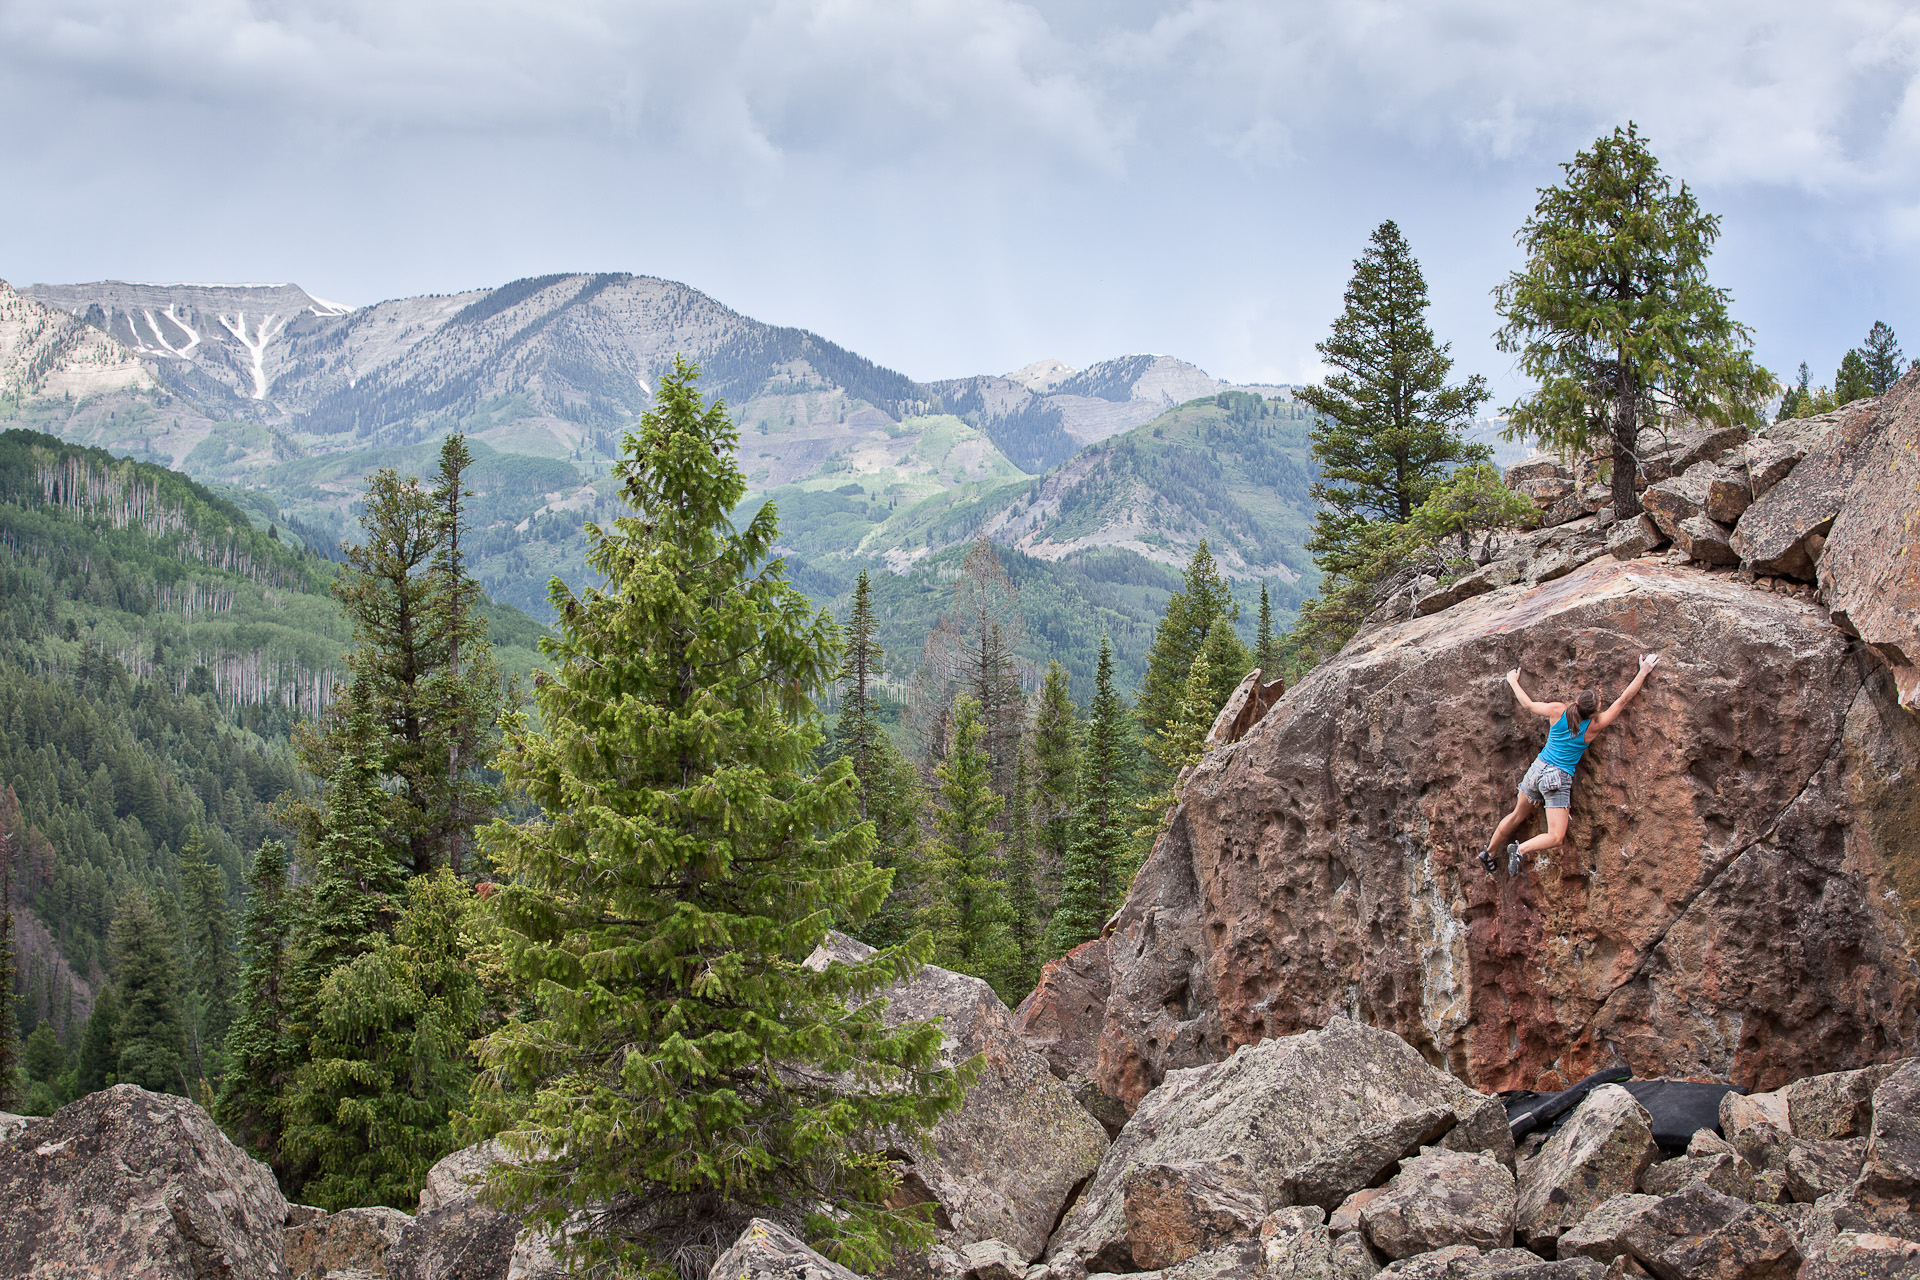 Bouldering in the Elk Mountains